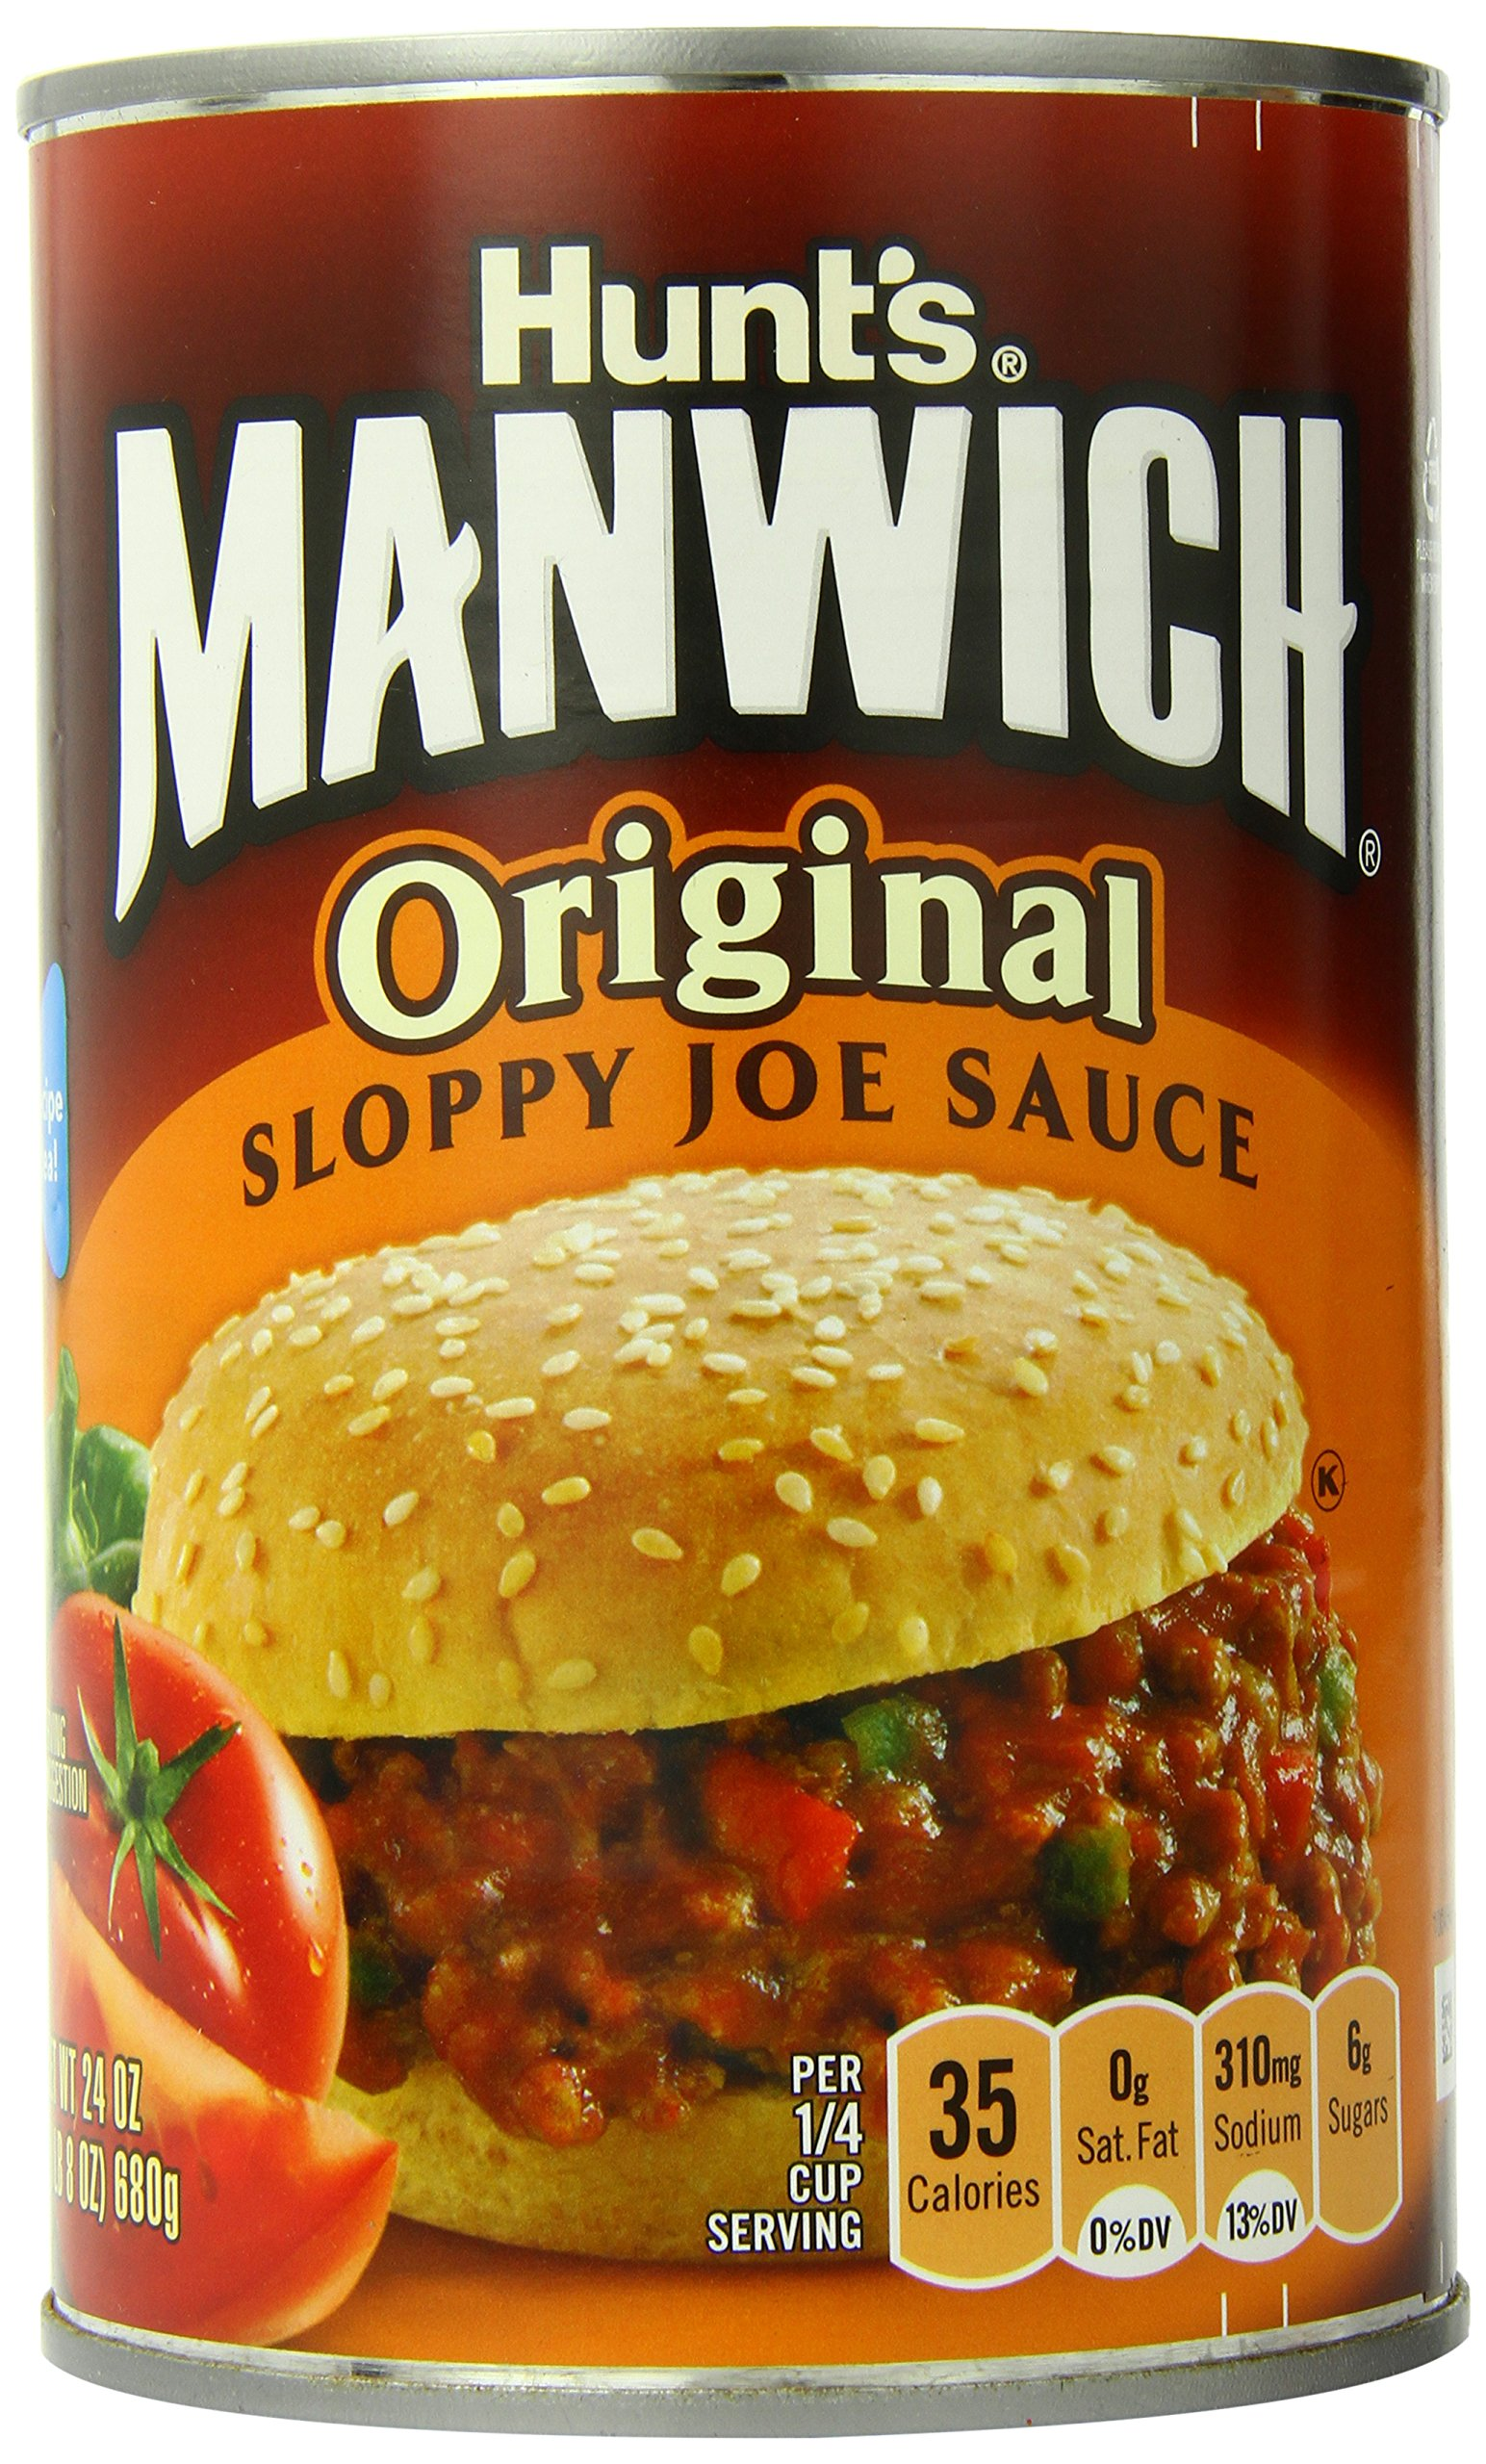 Manwich Original Sloppy Joe Sauce, 24 Ounce